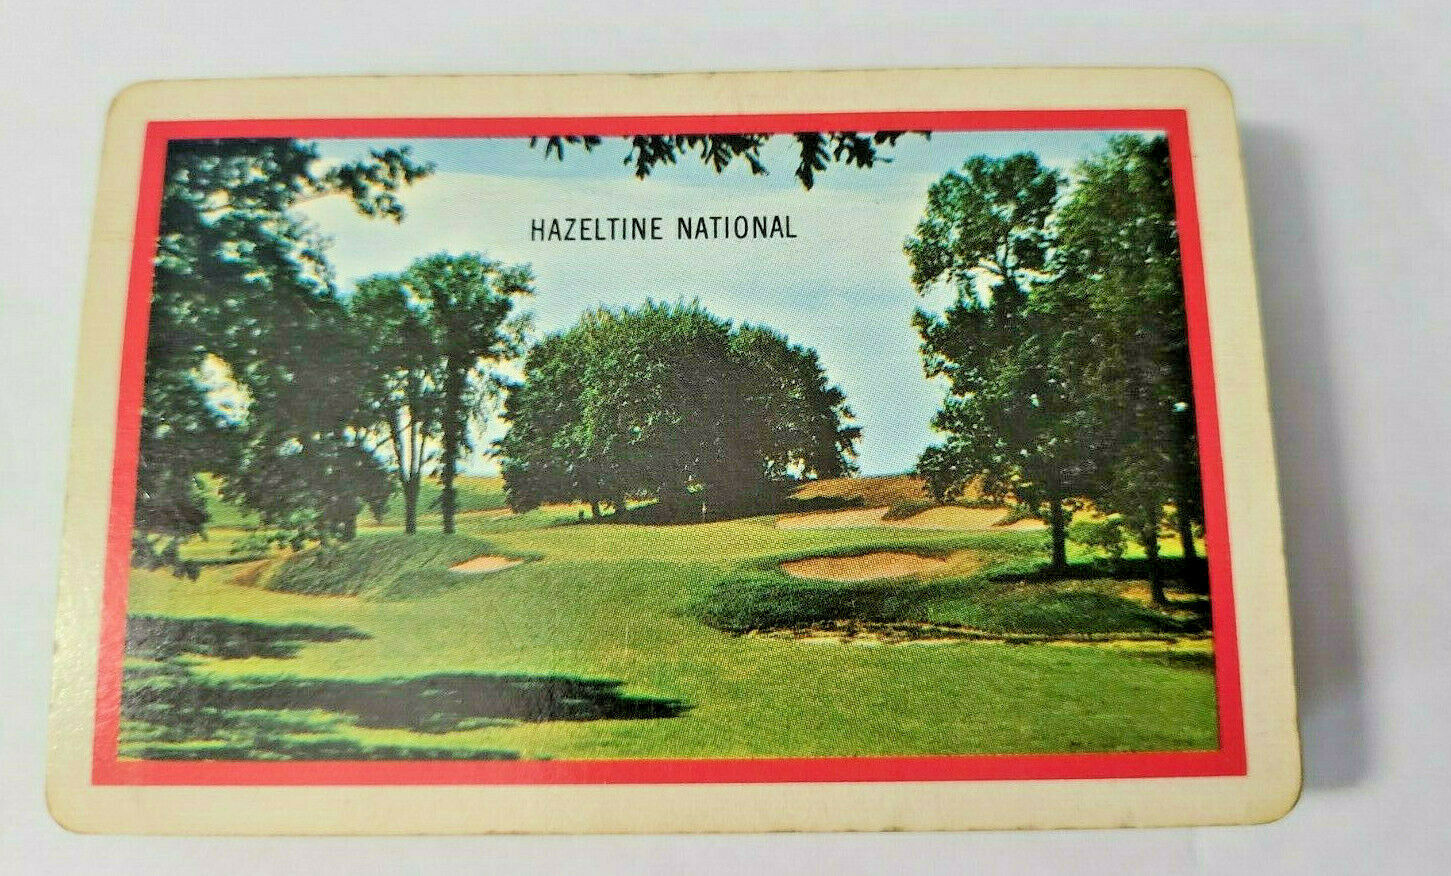 Hazeltine National Scenic Deck of Playing Cards Brown & Bigelow (#33)